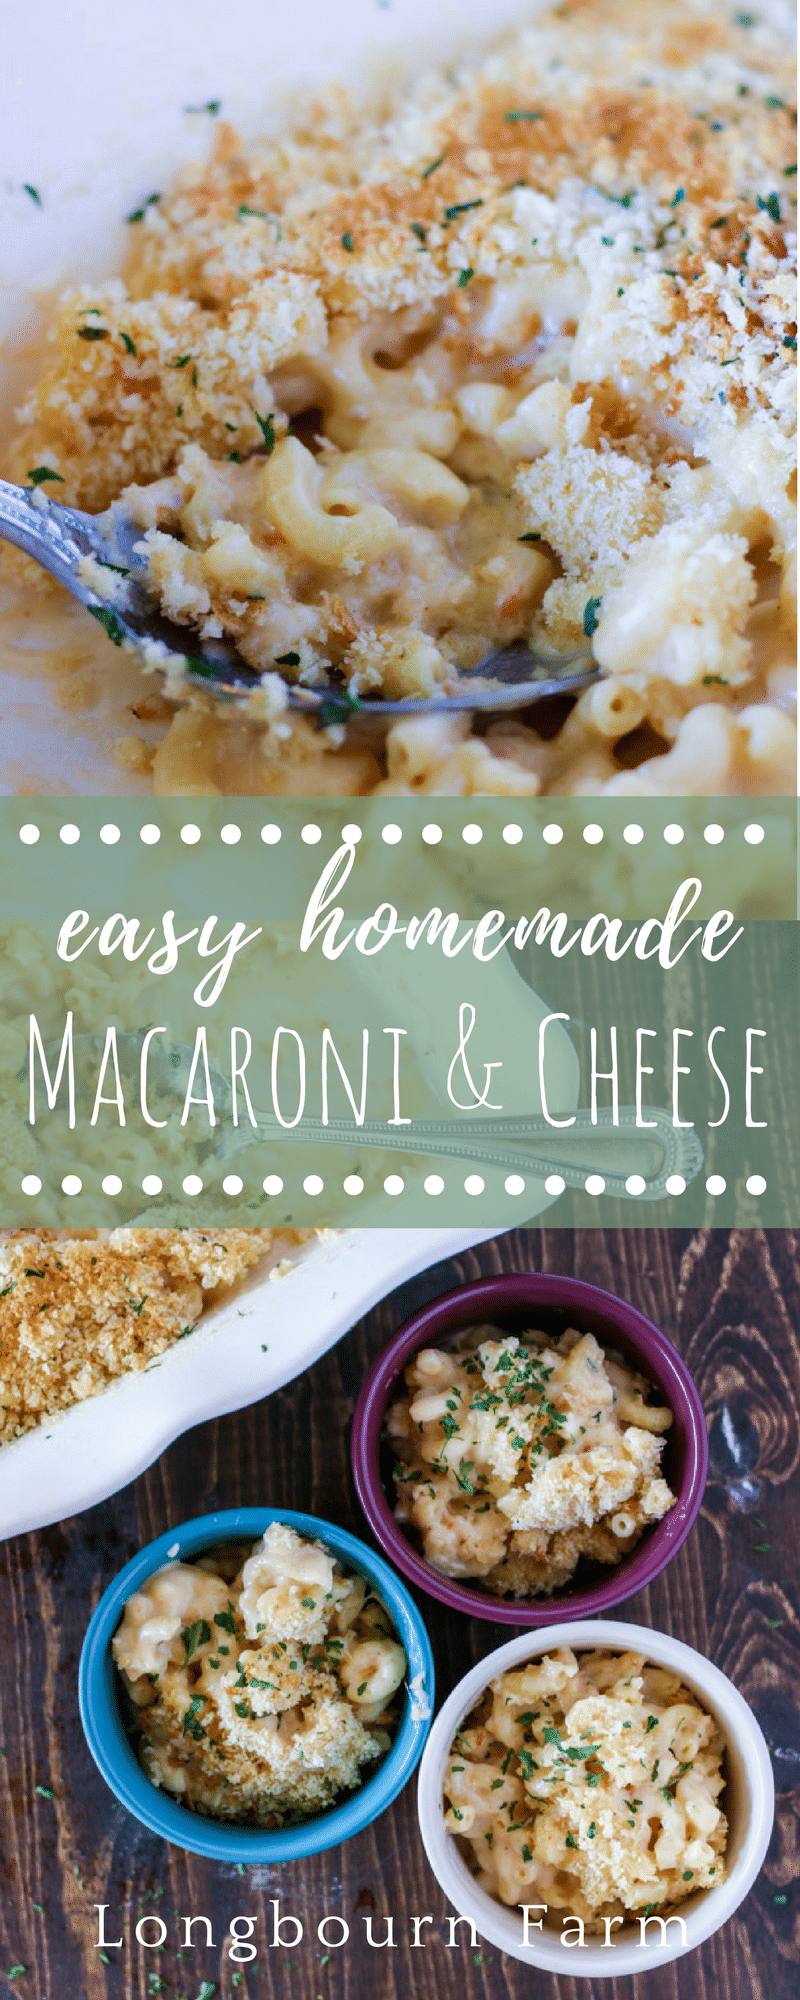 Easy homemade macaroni and cheese recipe! Cheesy, creamy, and quick this recipe is a family favorite and the perfect match for any meal!